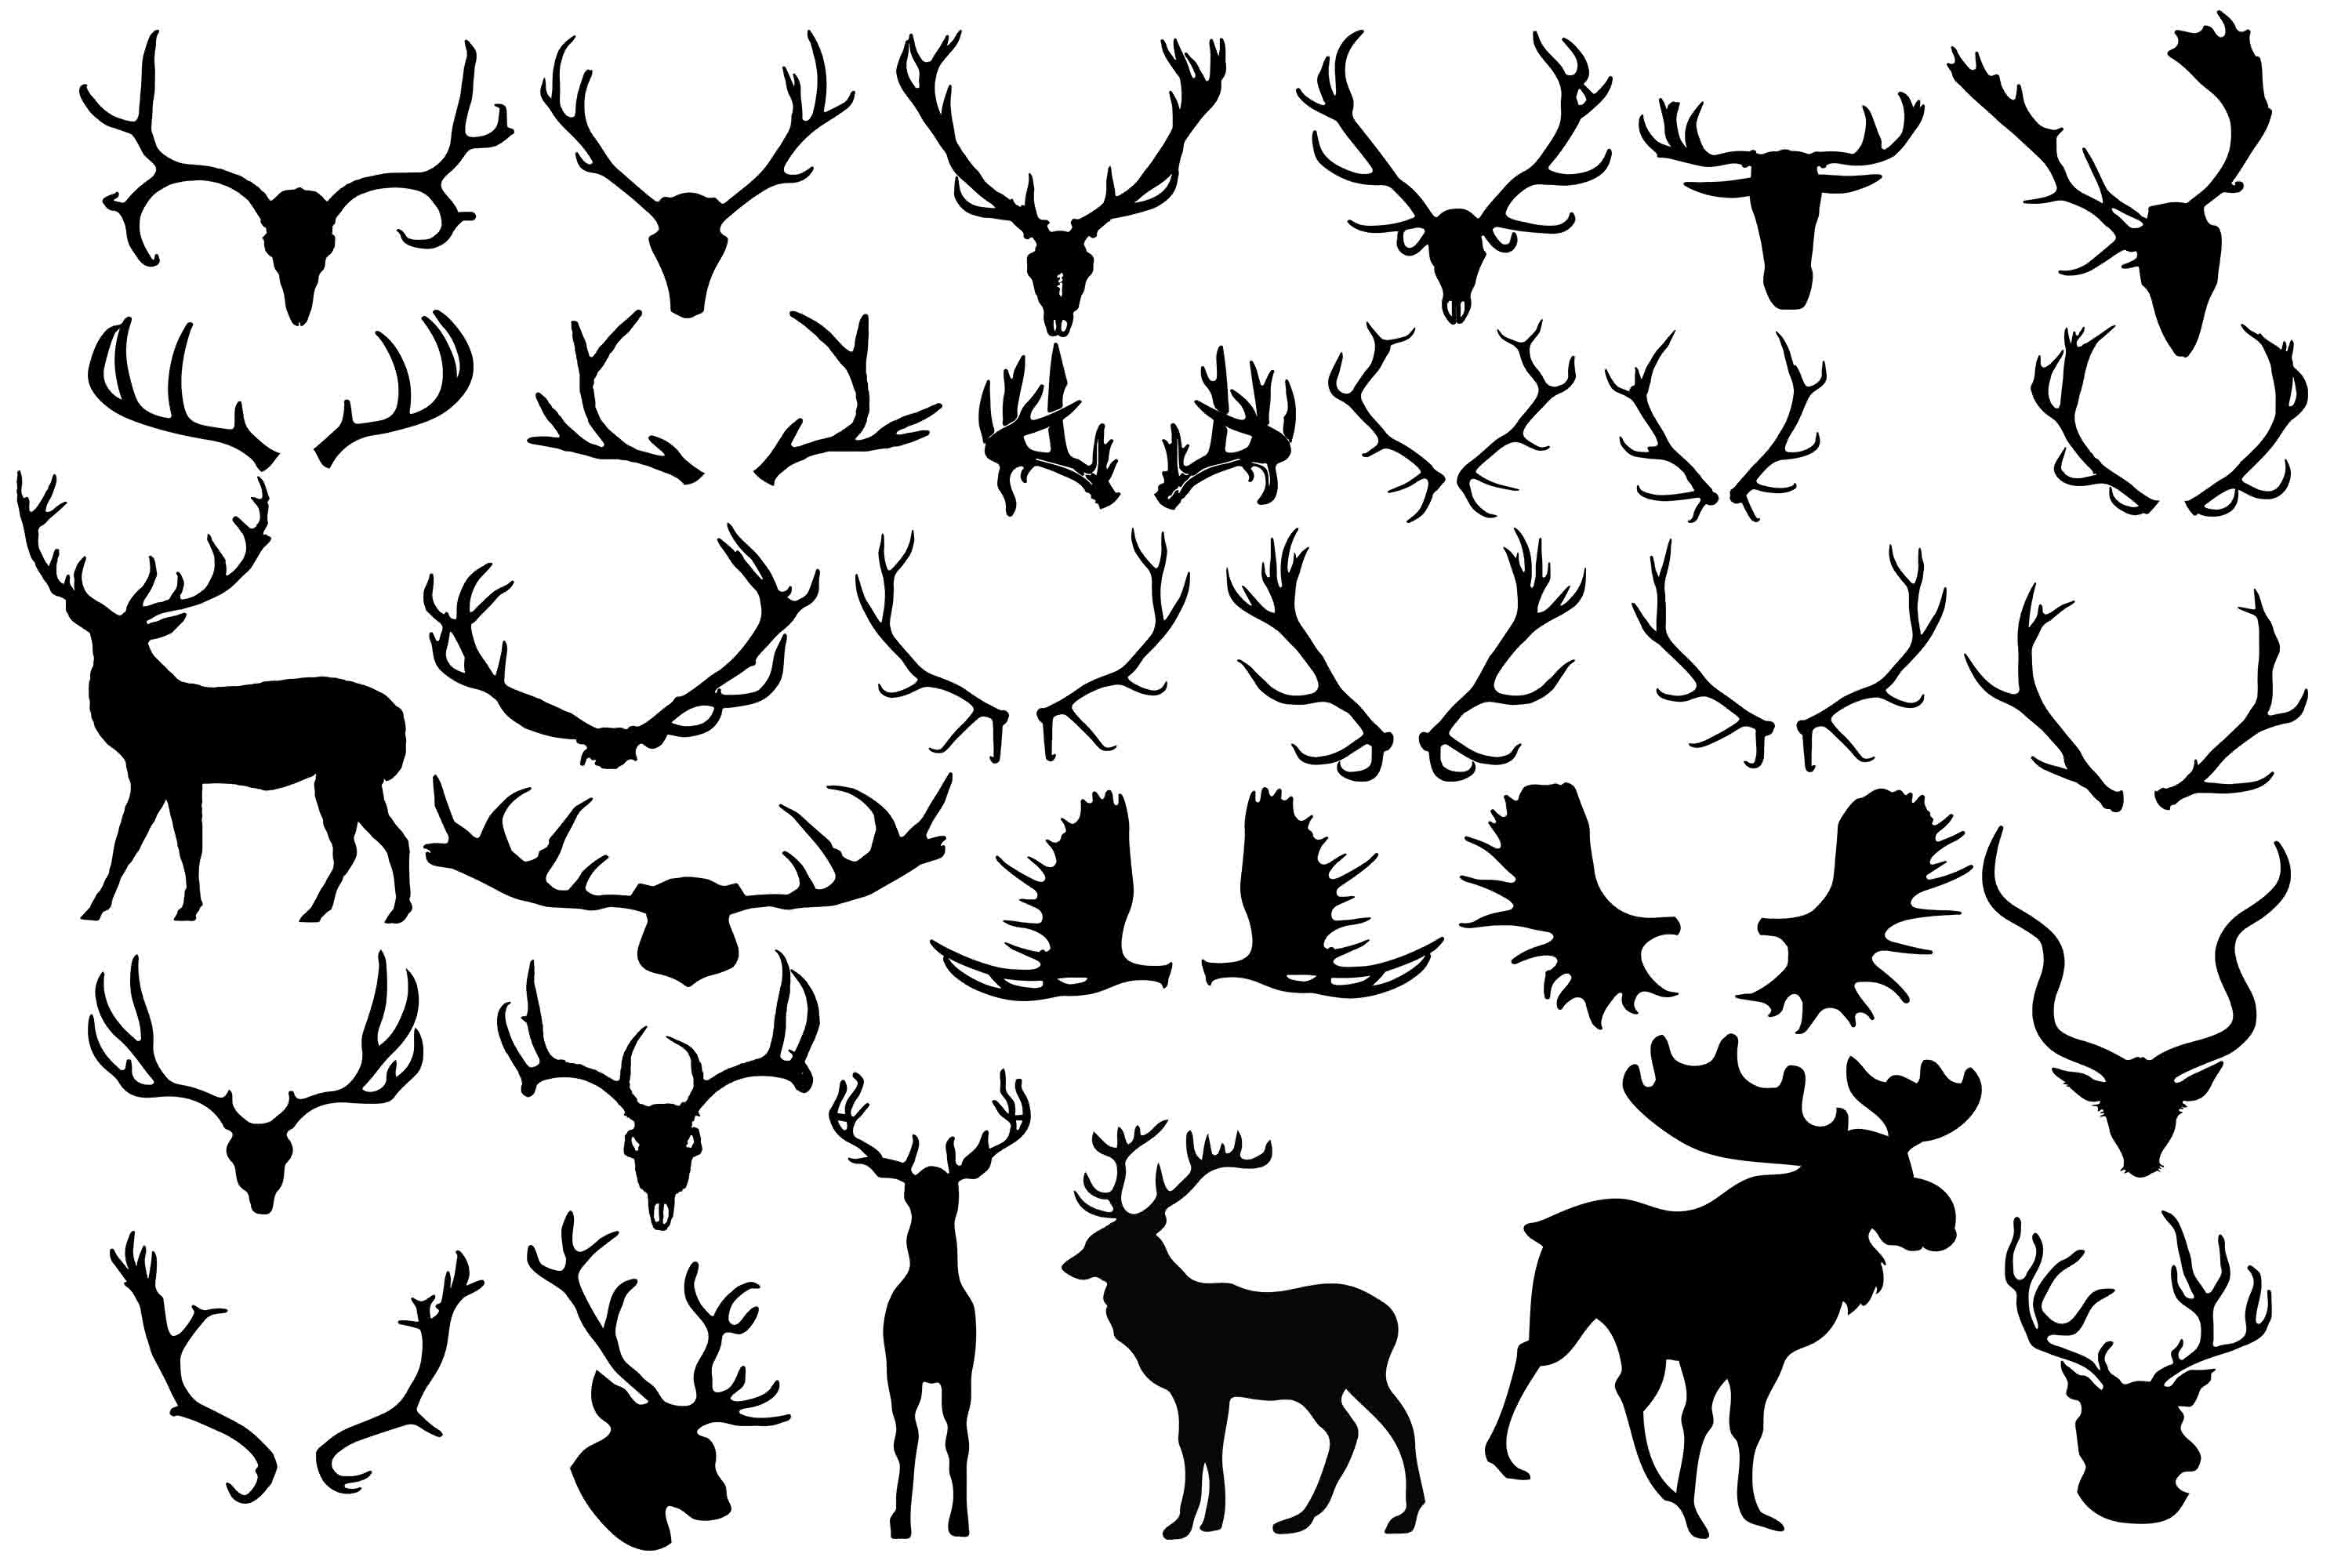 Download Free Antler Silhouette Graphic By Retrowalldecor Creative Fabrica for Cricut Explore, Silhouette and other cutting machines.